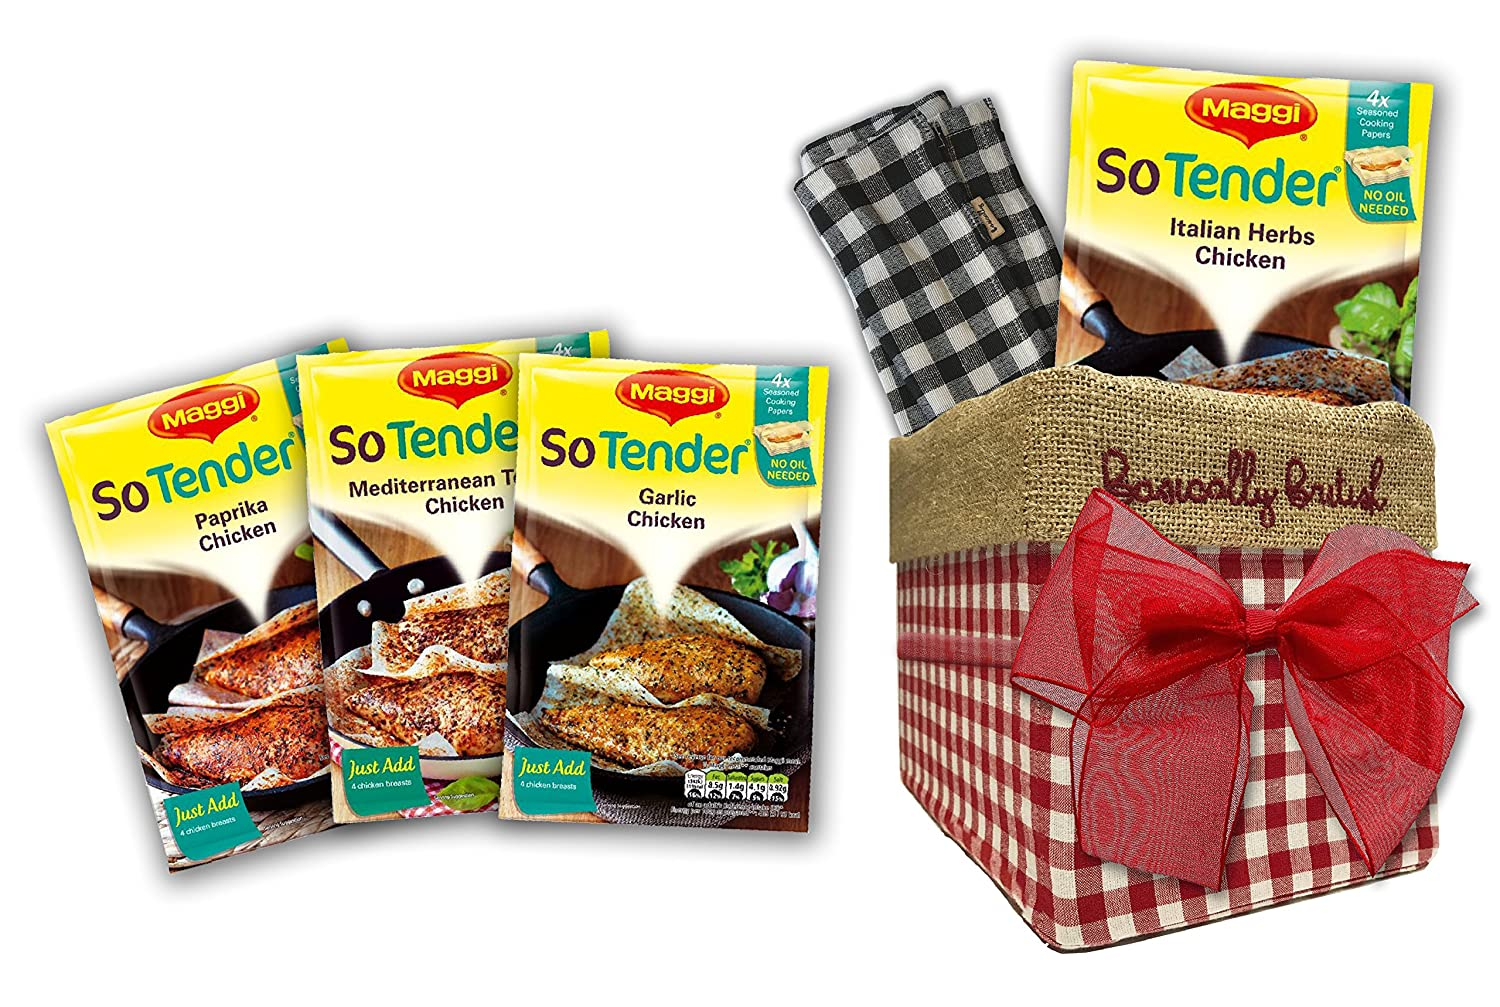 Maggi So Tender British Food variety by The Yummy Palette   Maggi So Tender Paprika Maggi So Tender Italian Herbs in Traditional Basically Britsh Hand Embroidered Box